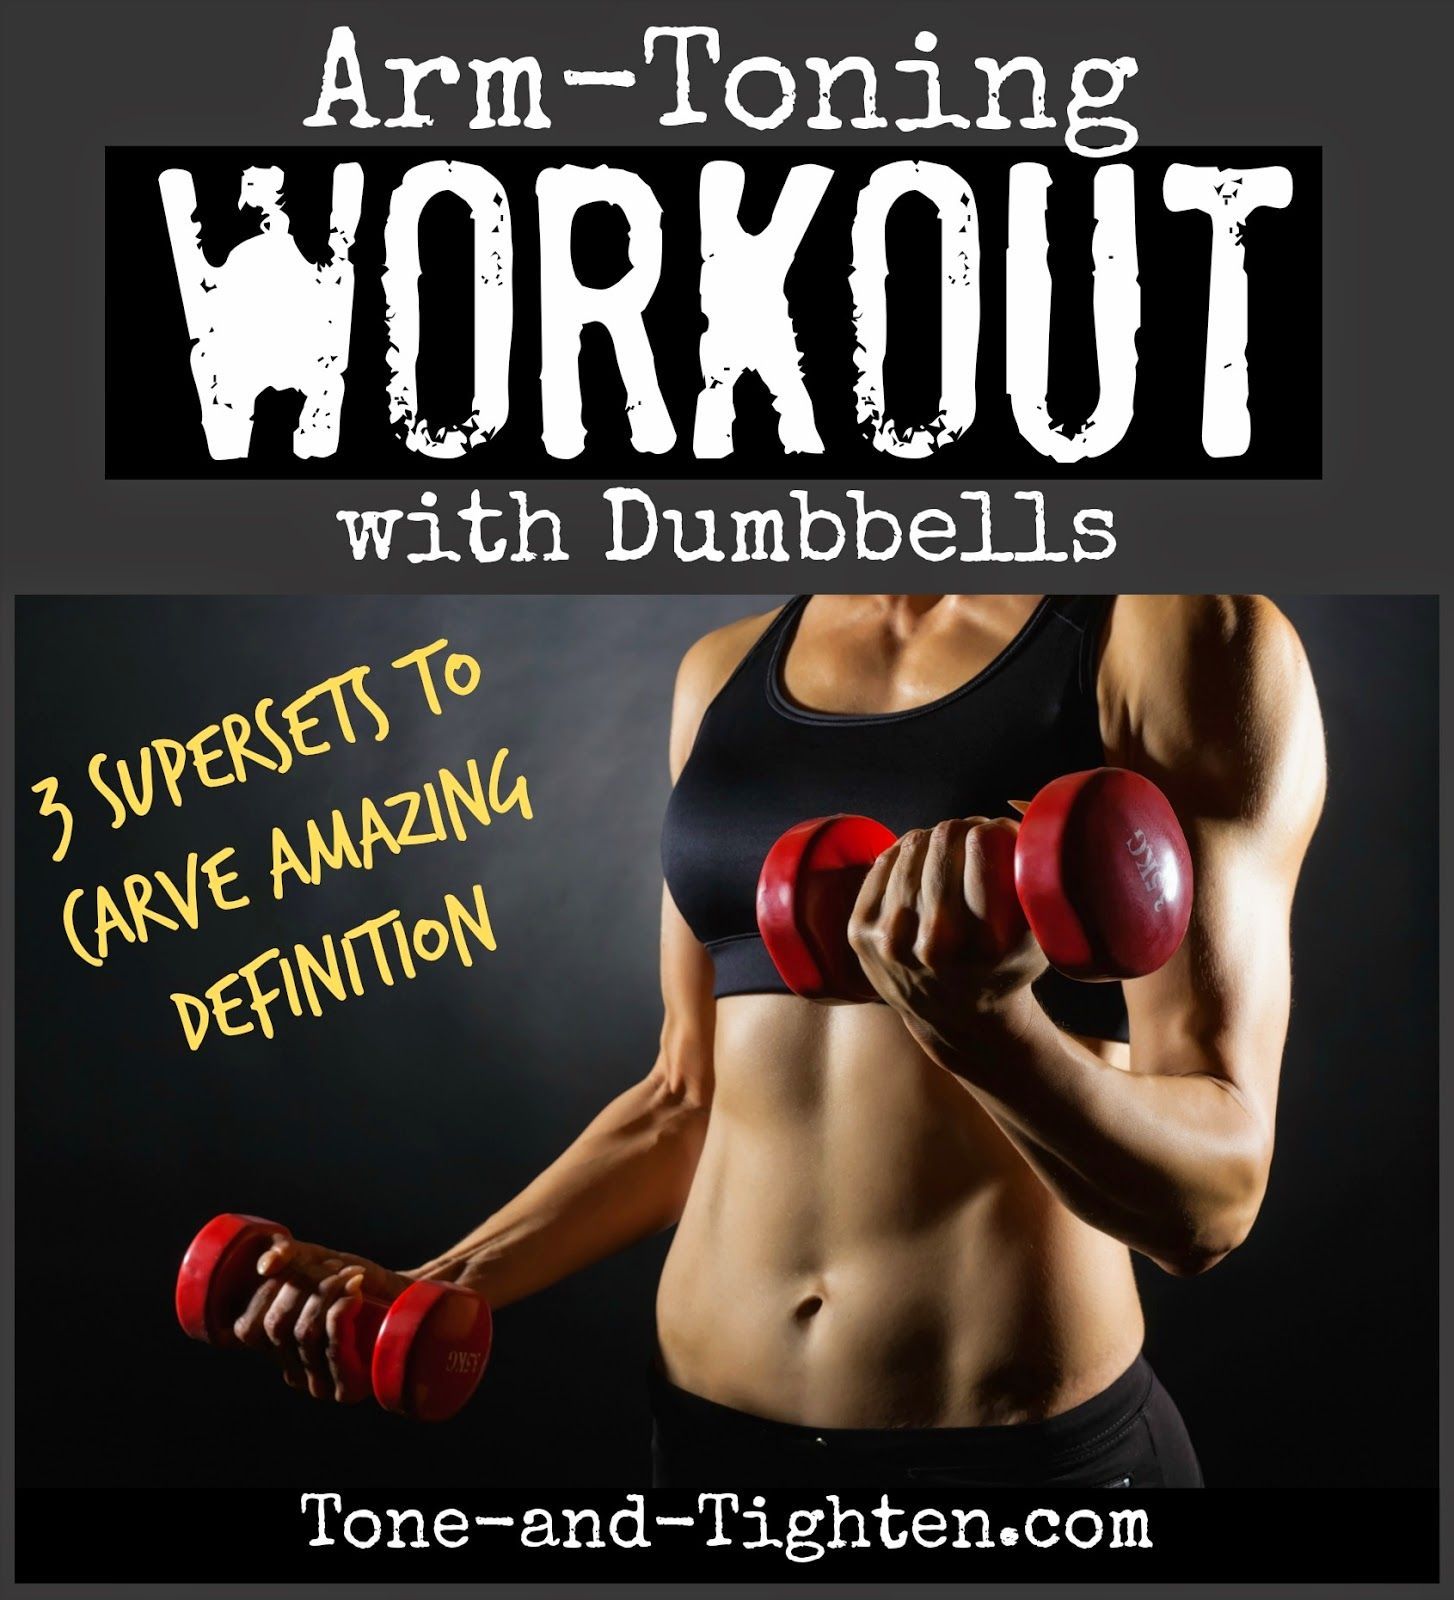 Free Weights Total Body Workout: The Best Arm Toning Workout With Dumbbells